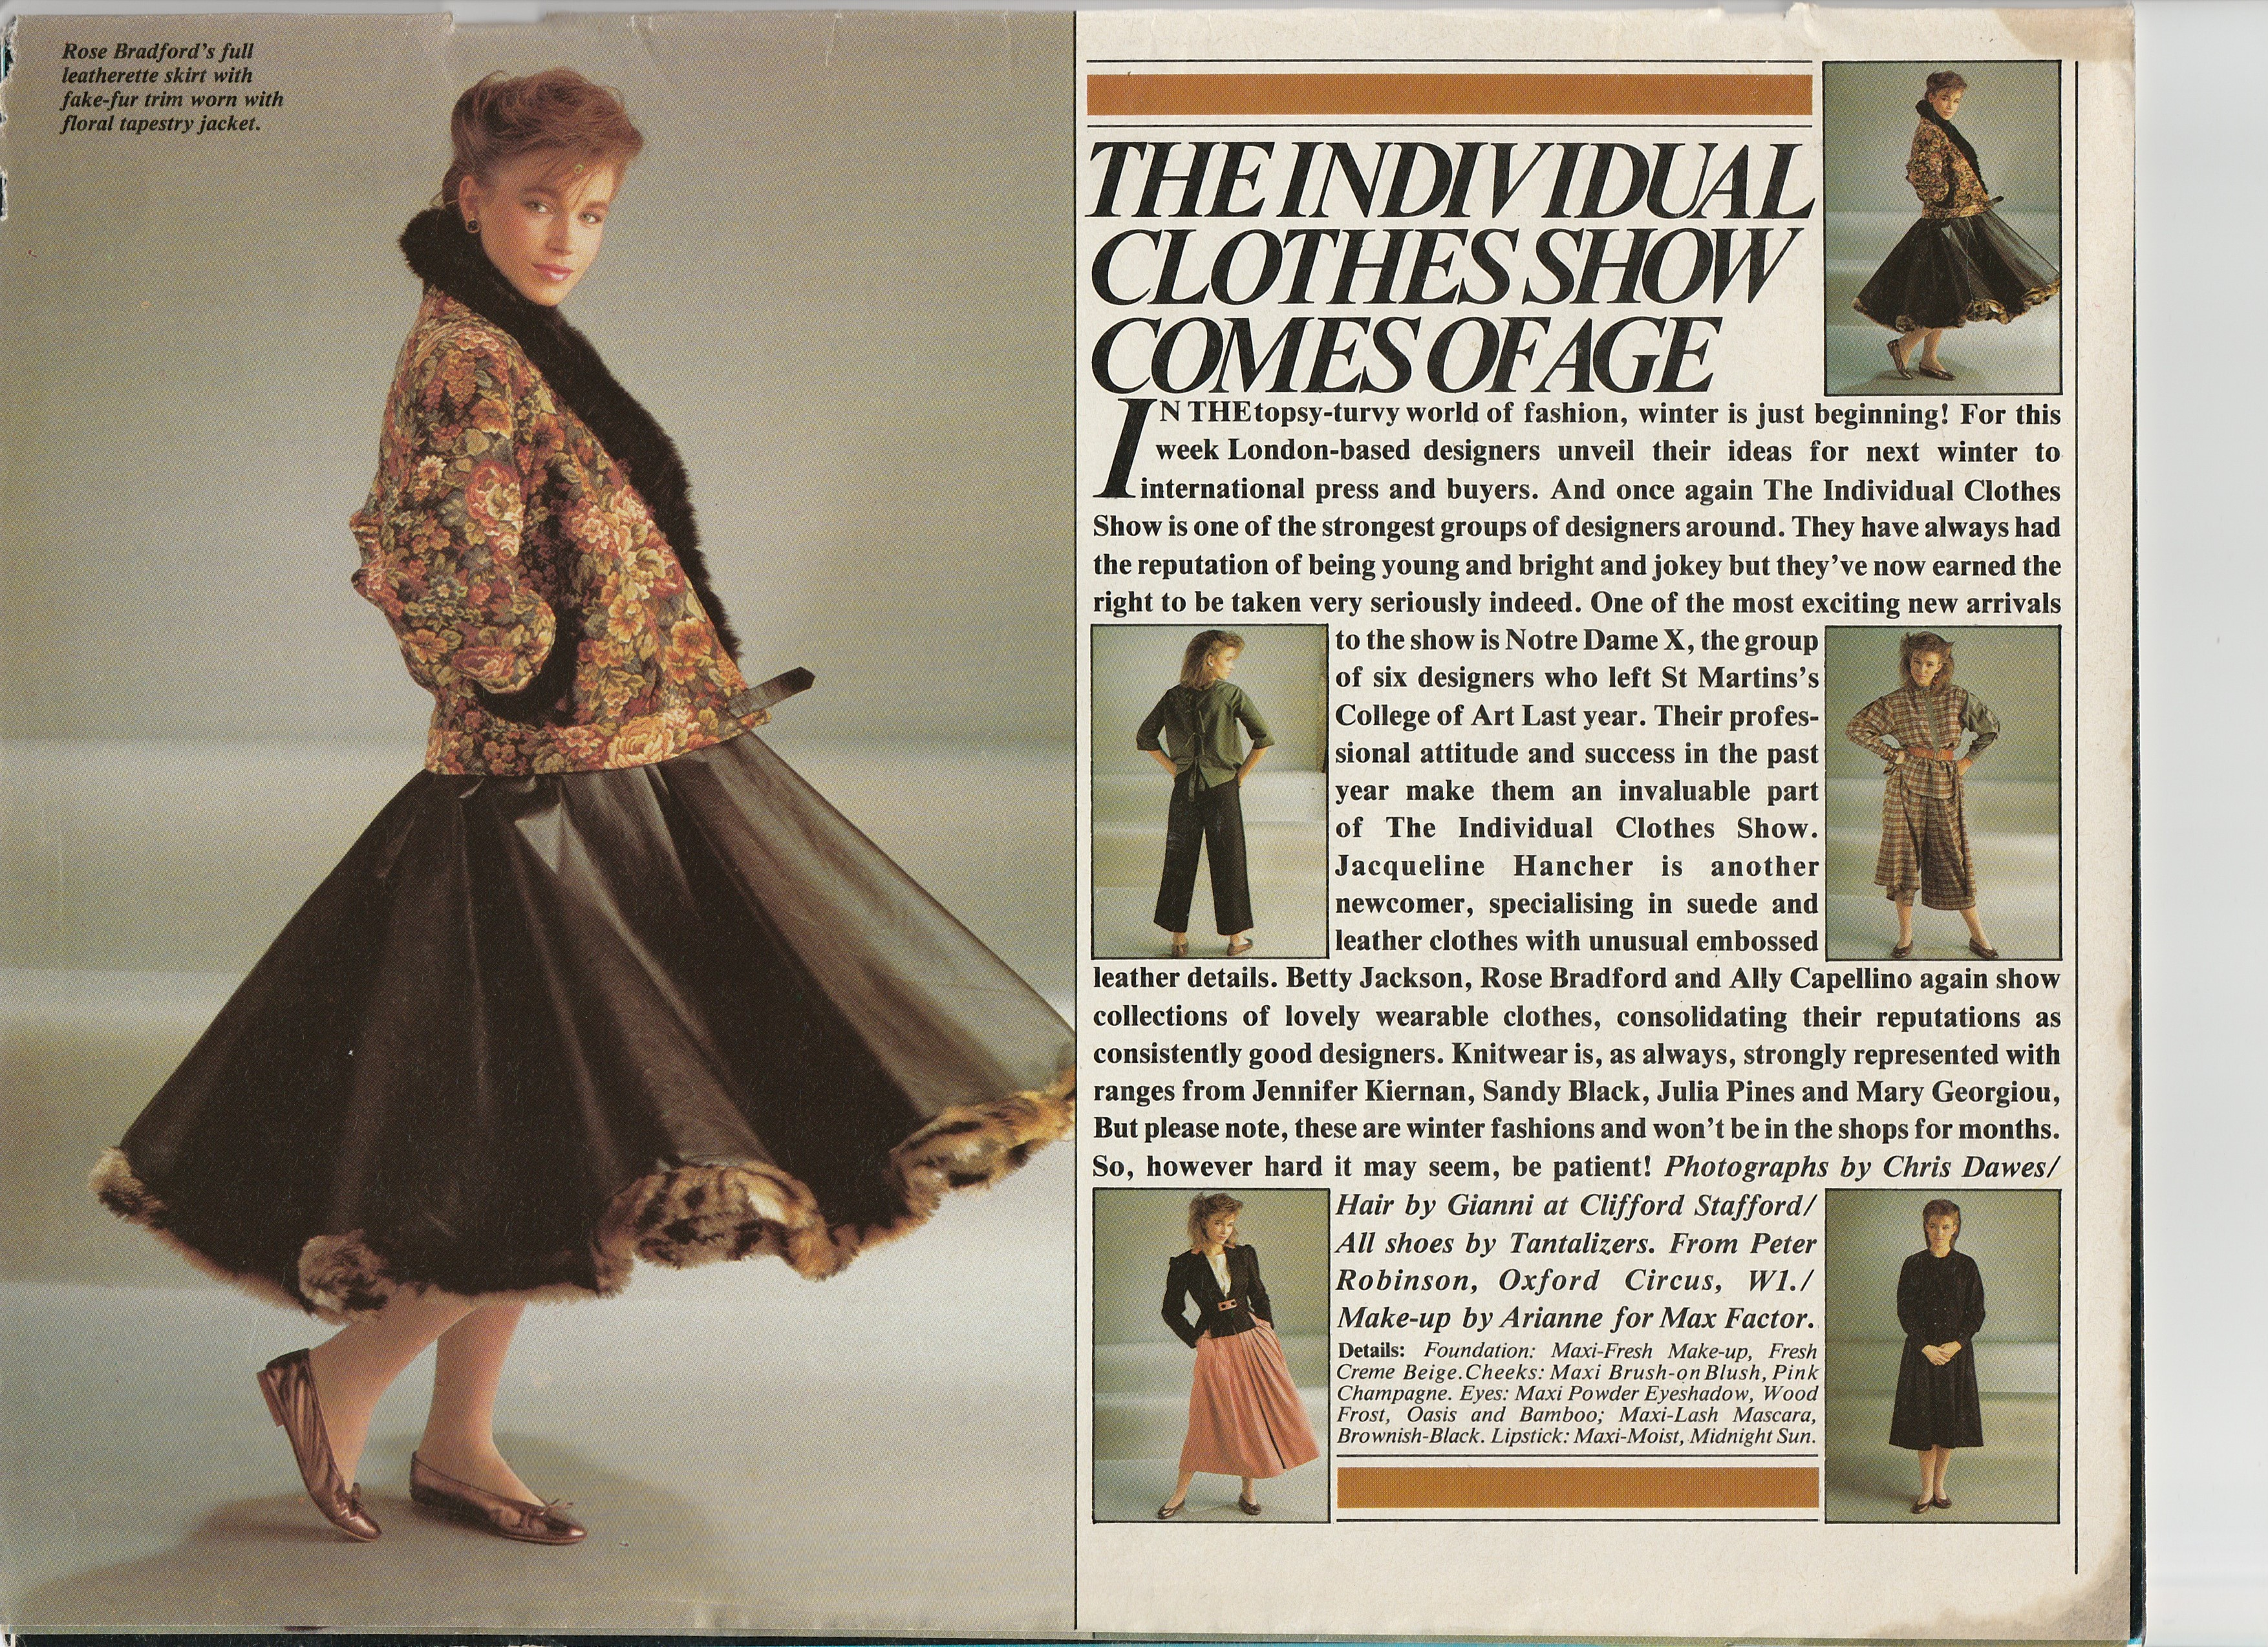 The Individual Clothes Show 1981